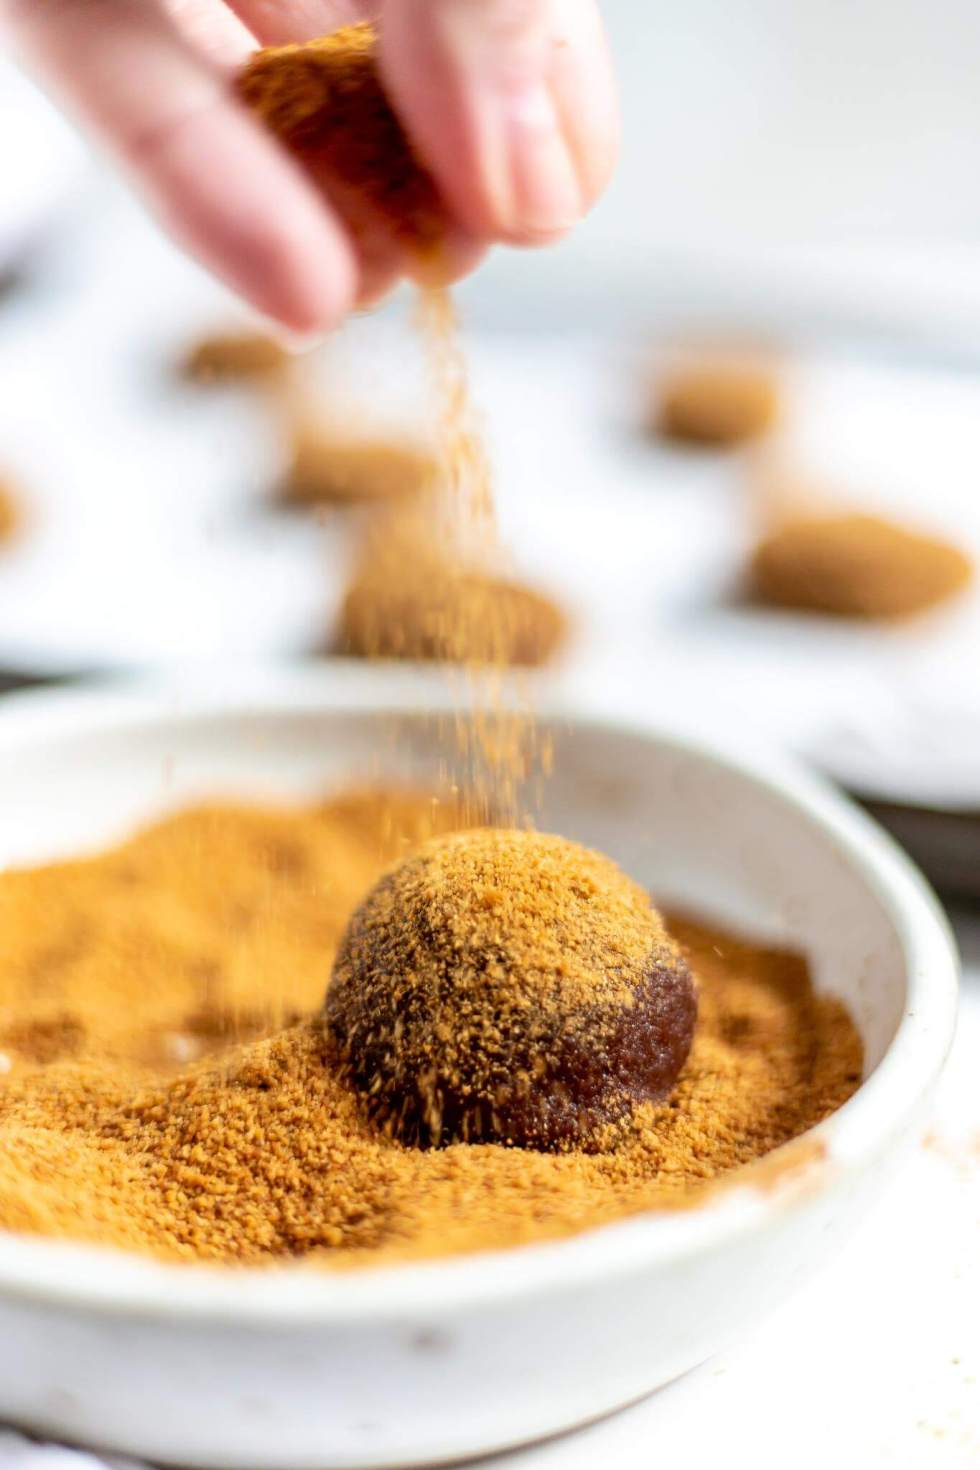 ginger cookie dough being sprinkles with coconut sugar